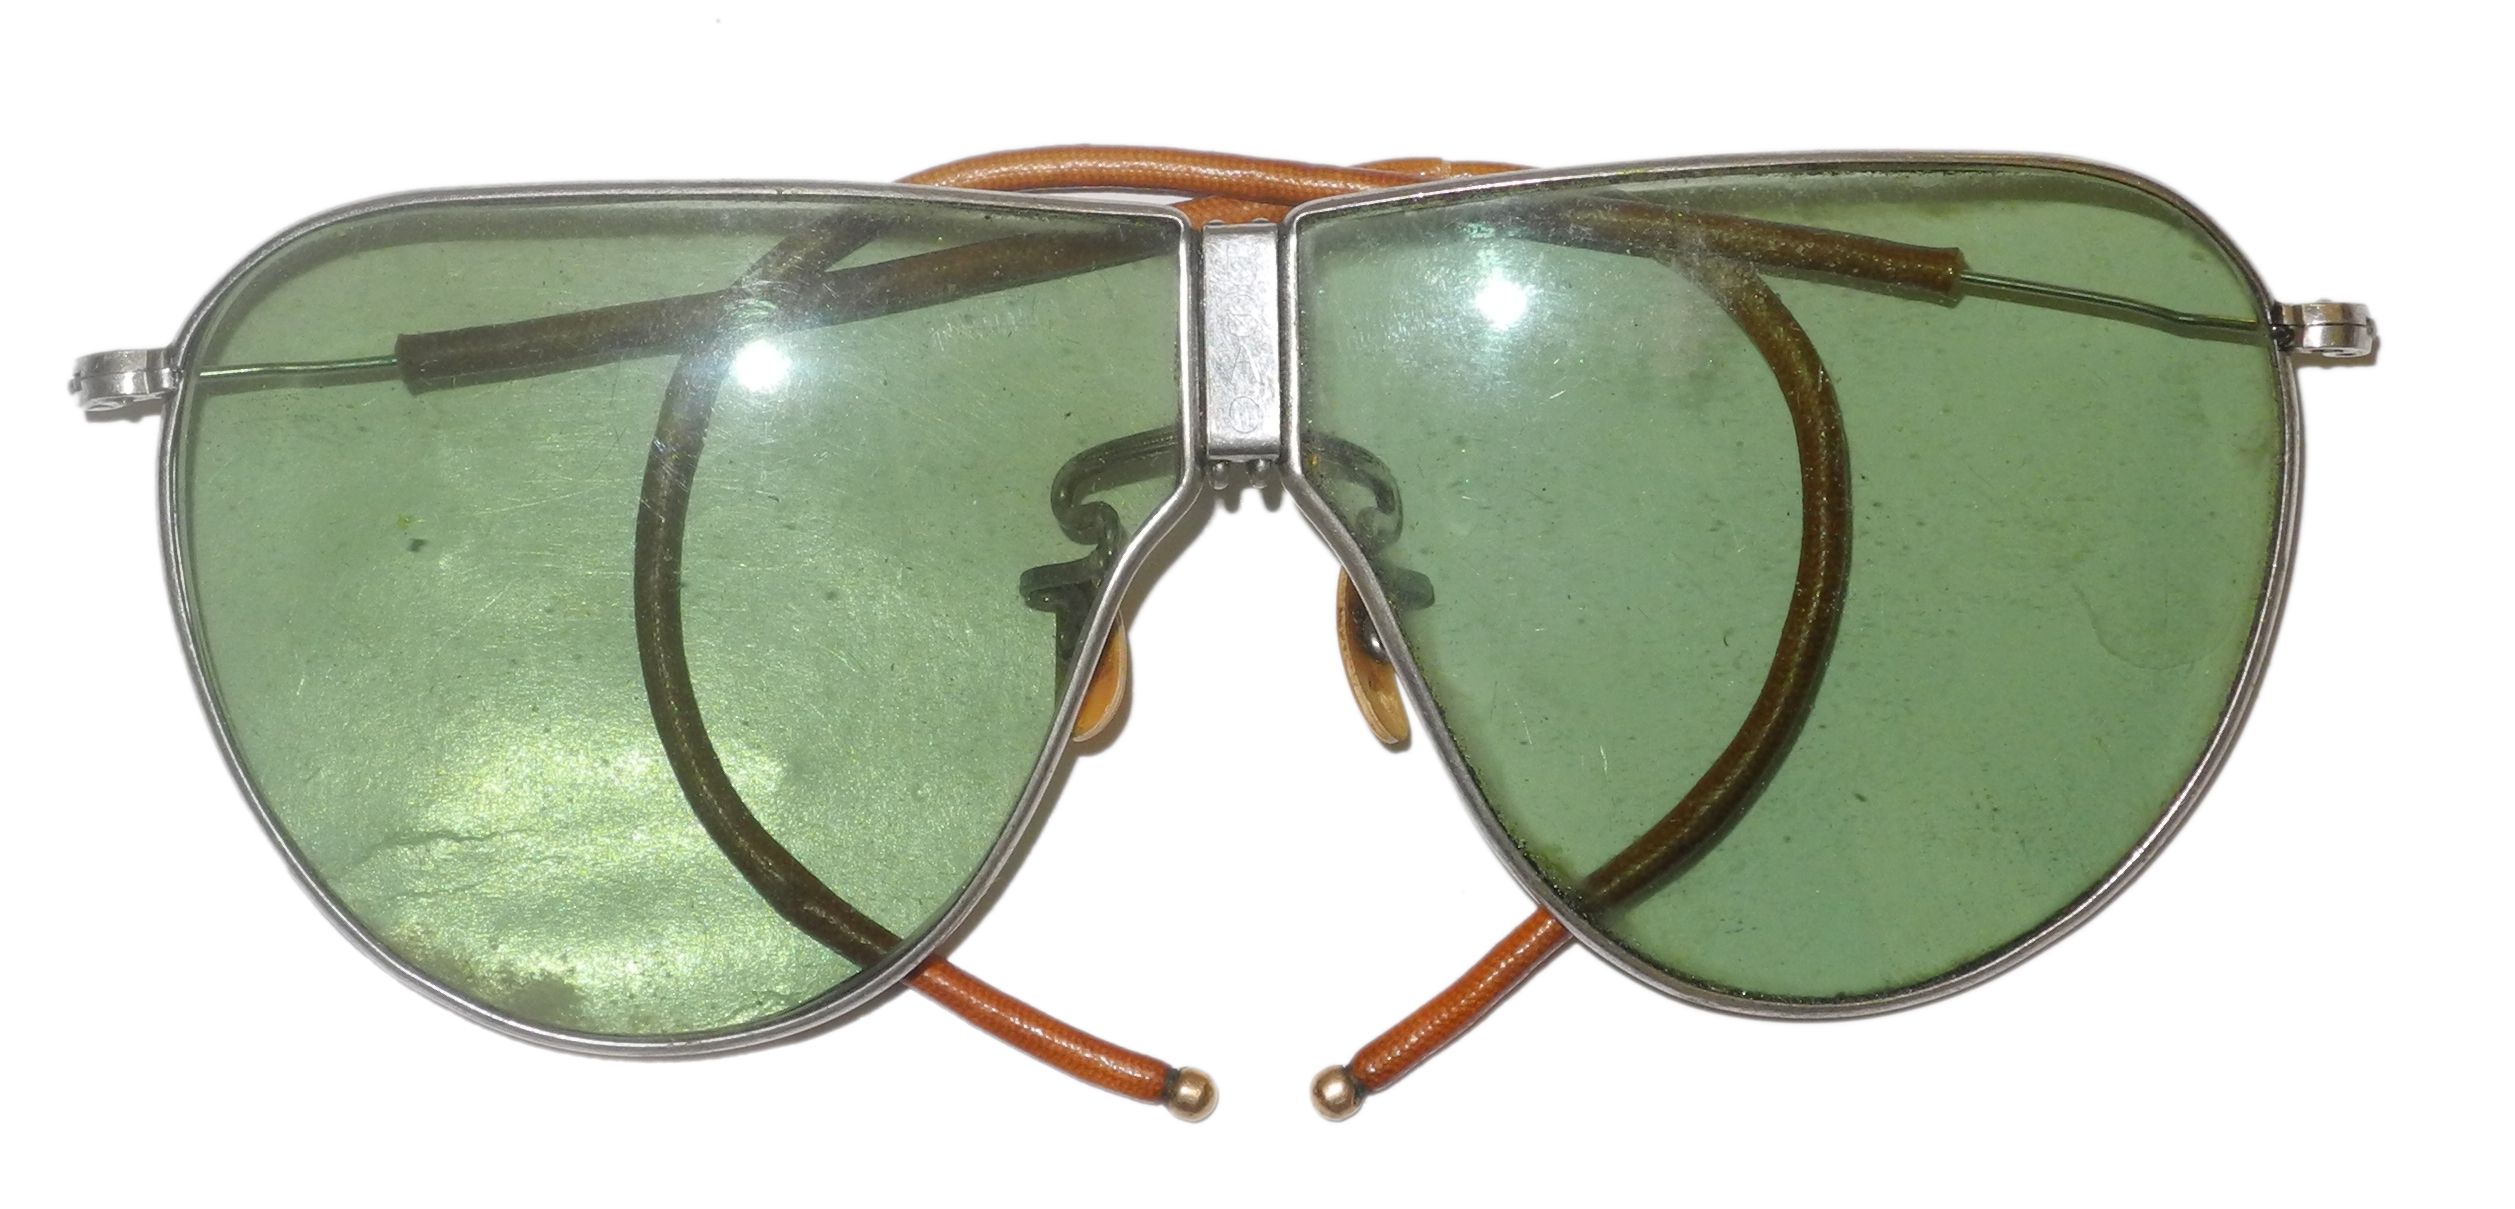 Army Air Corps D-1 goggles / glasses